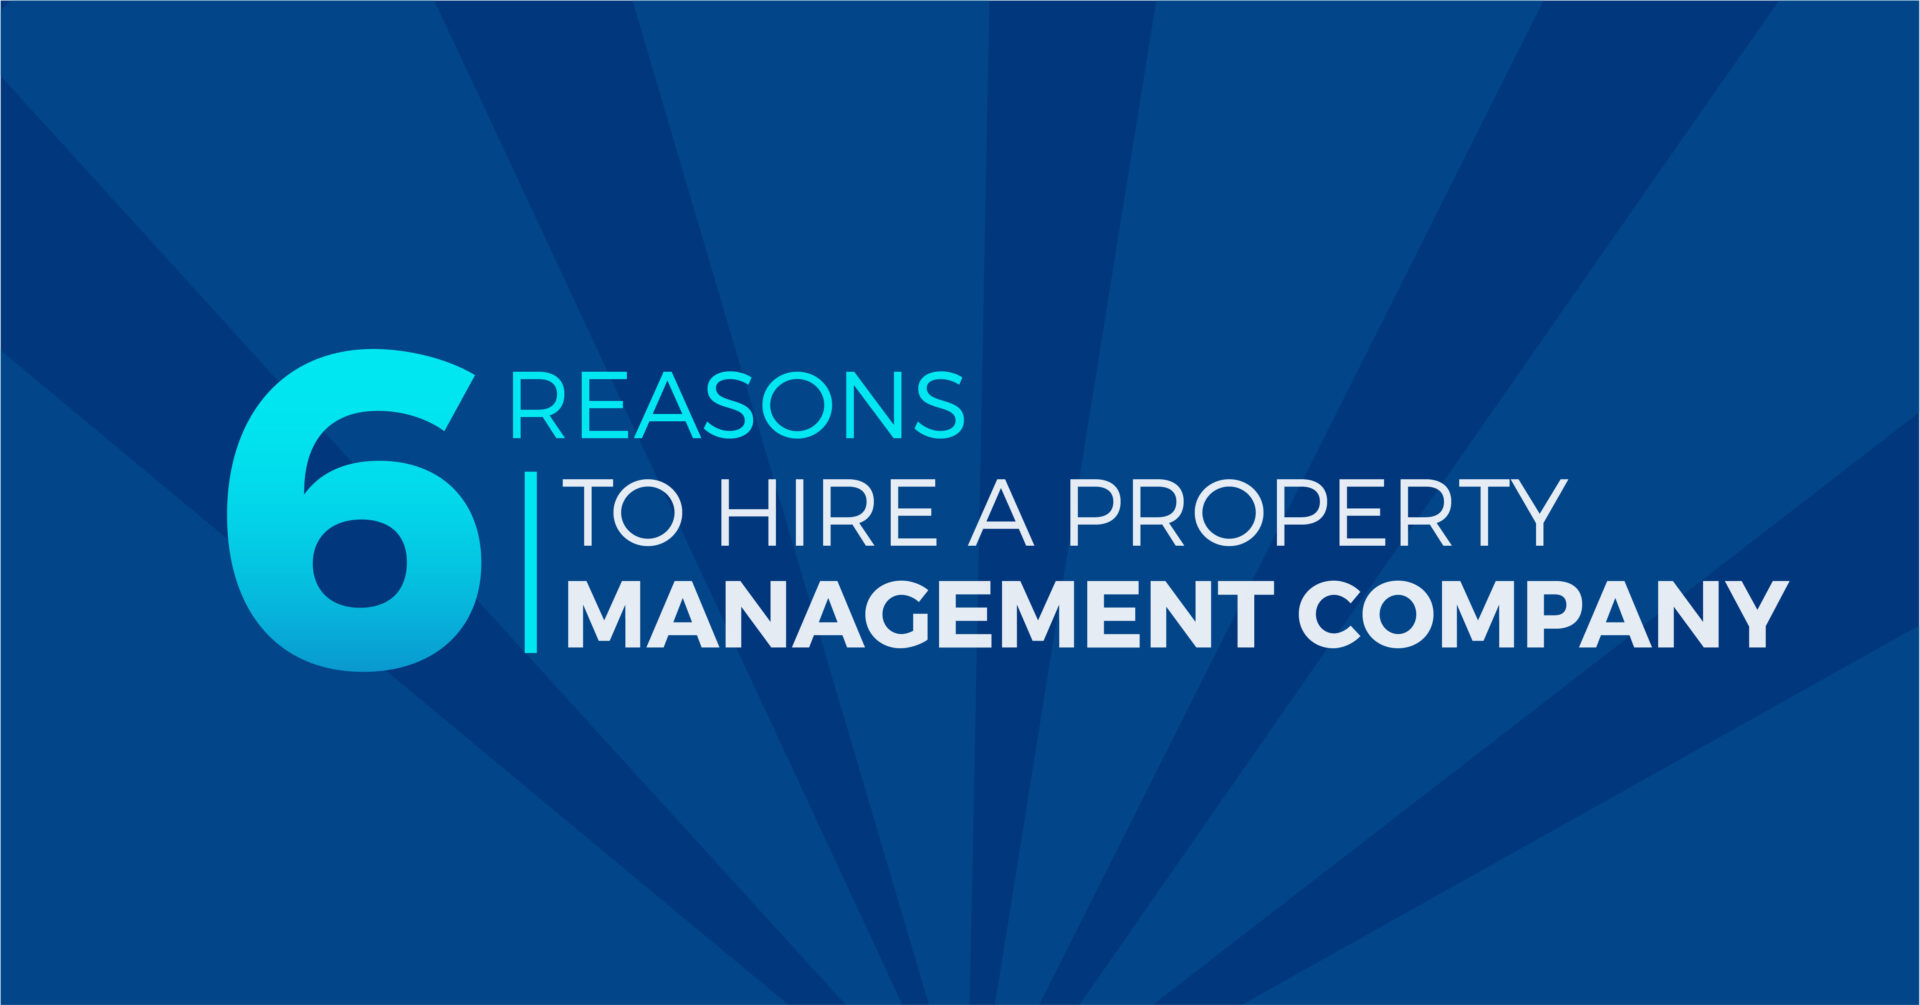 6 Reasons to Hire a Property Management Company